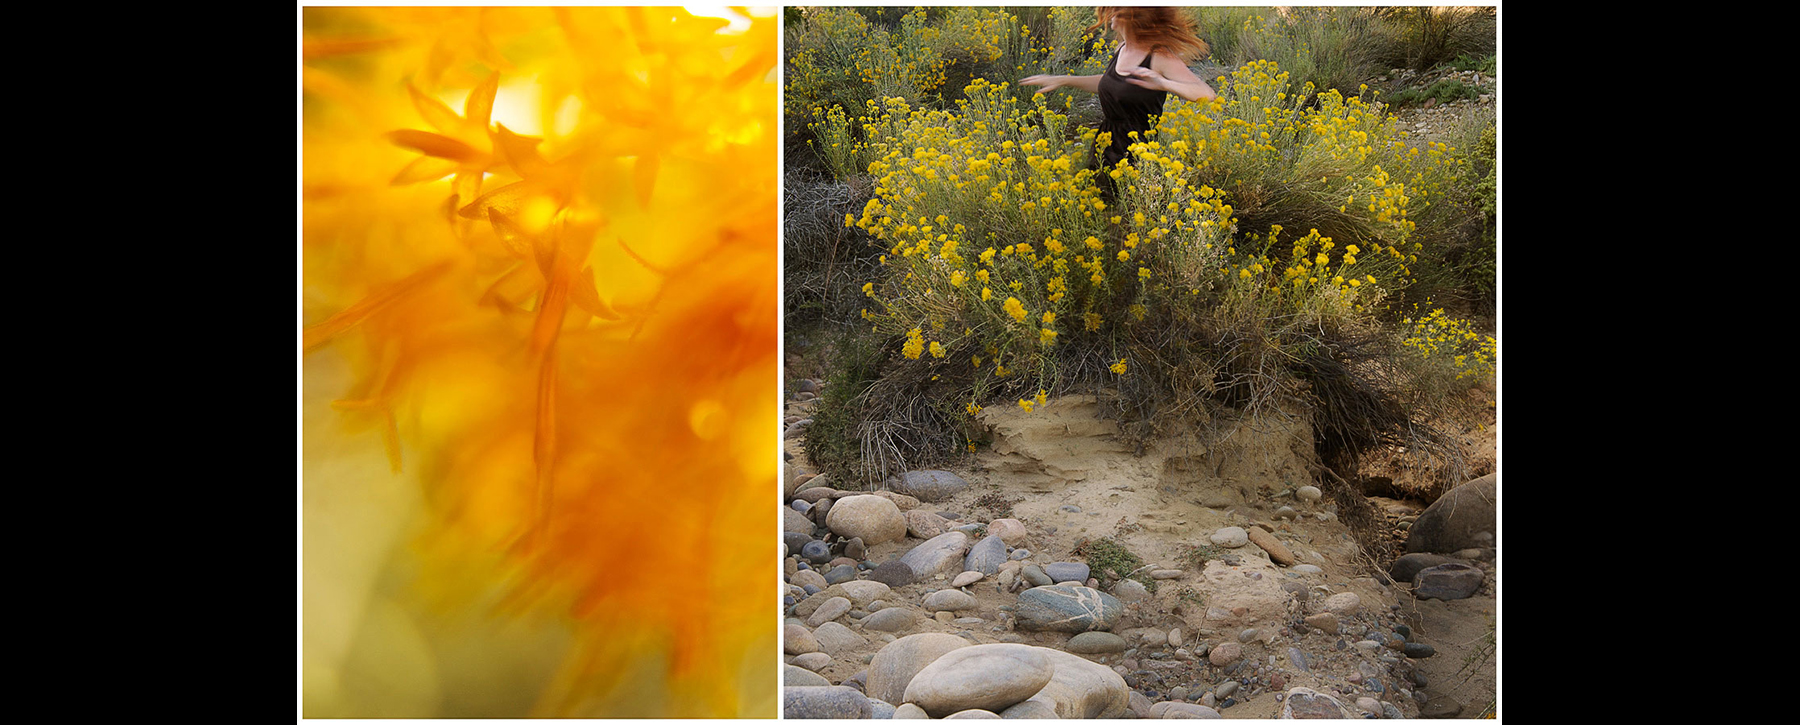 Rayless Goldenrod: I thought I had taken every     precaution  .